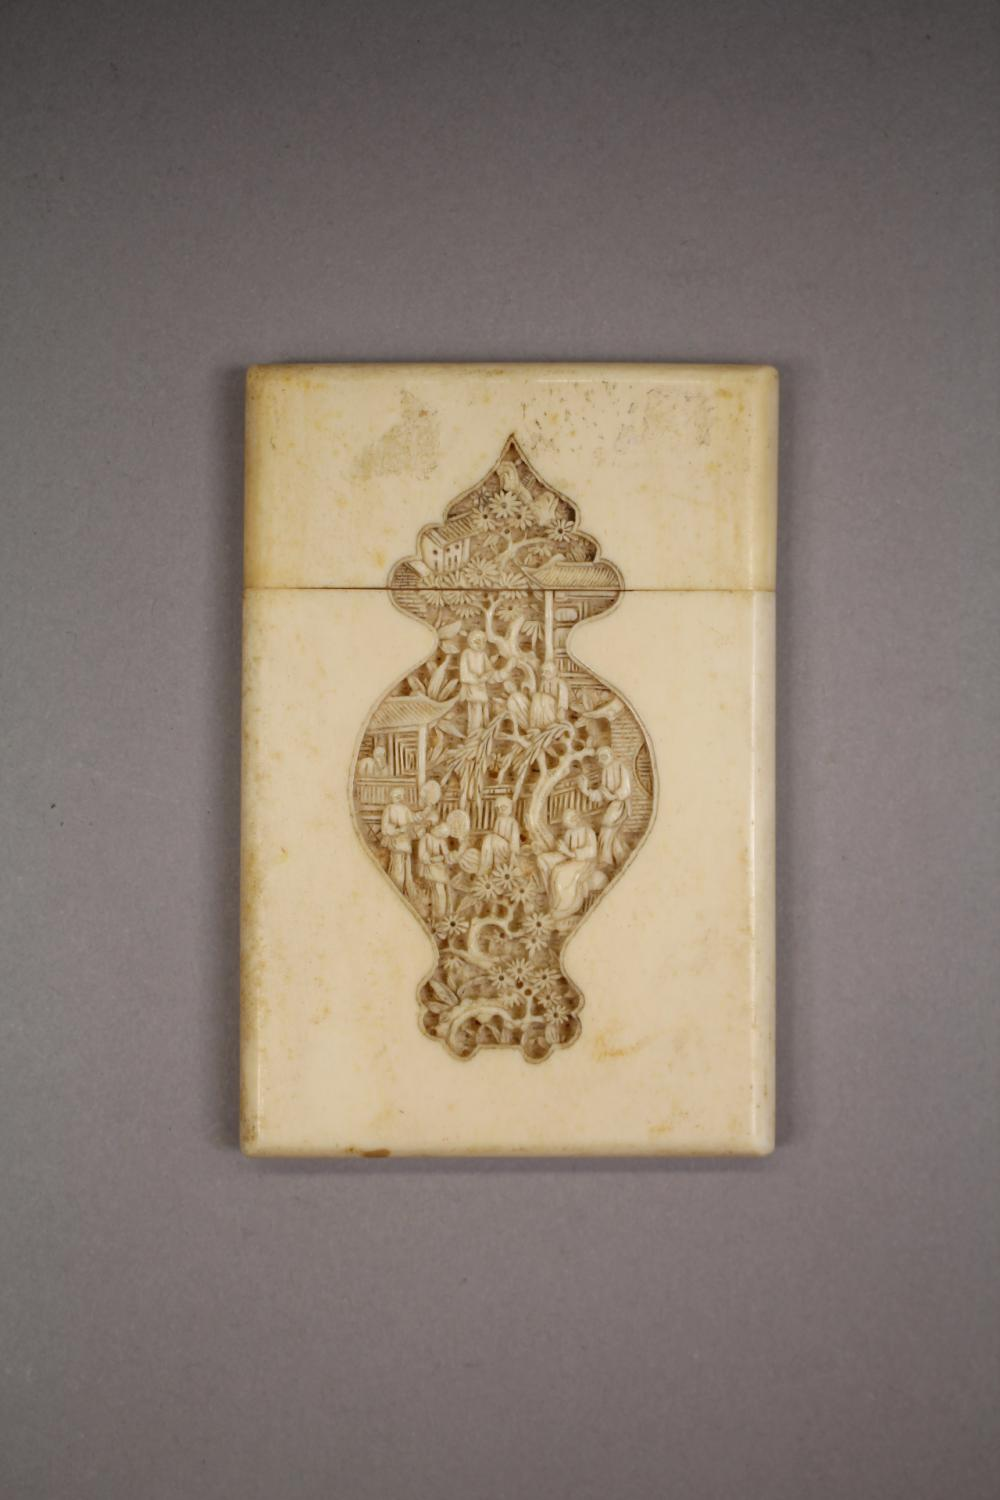 Antique 19th Century Chinese Cantonese ivory calling card case, carved in relief of figures & trees, approx 11.5cm x 7.5cm